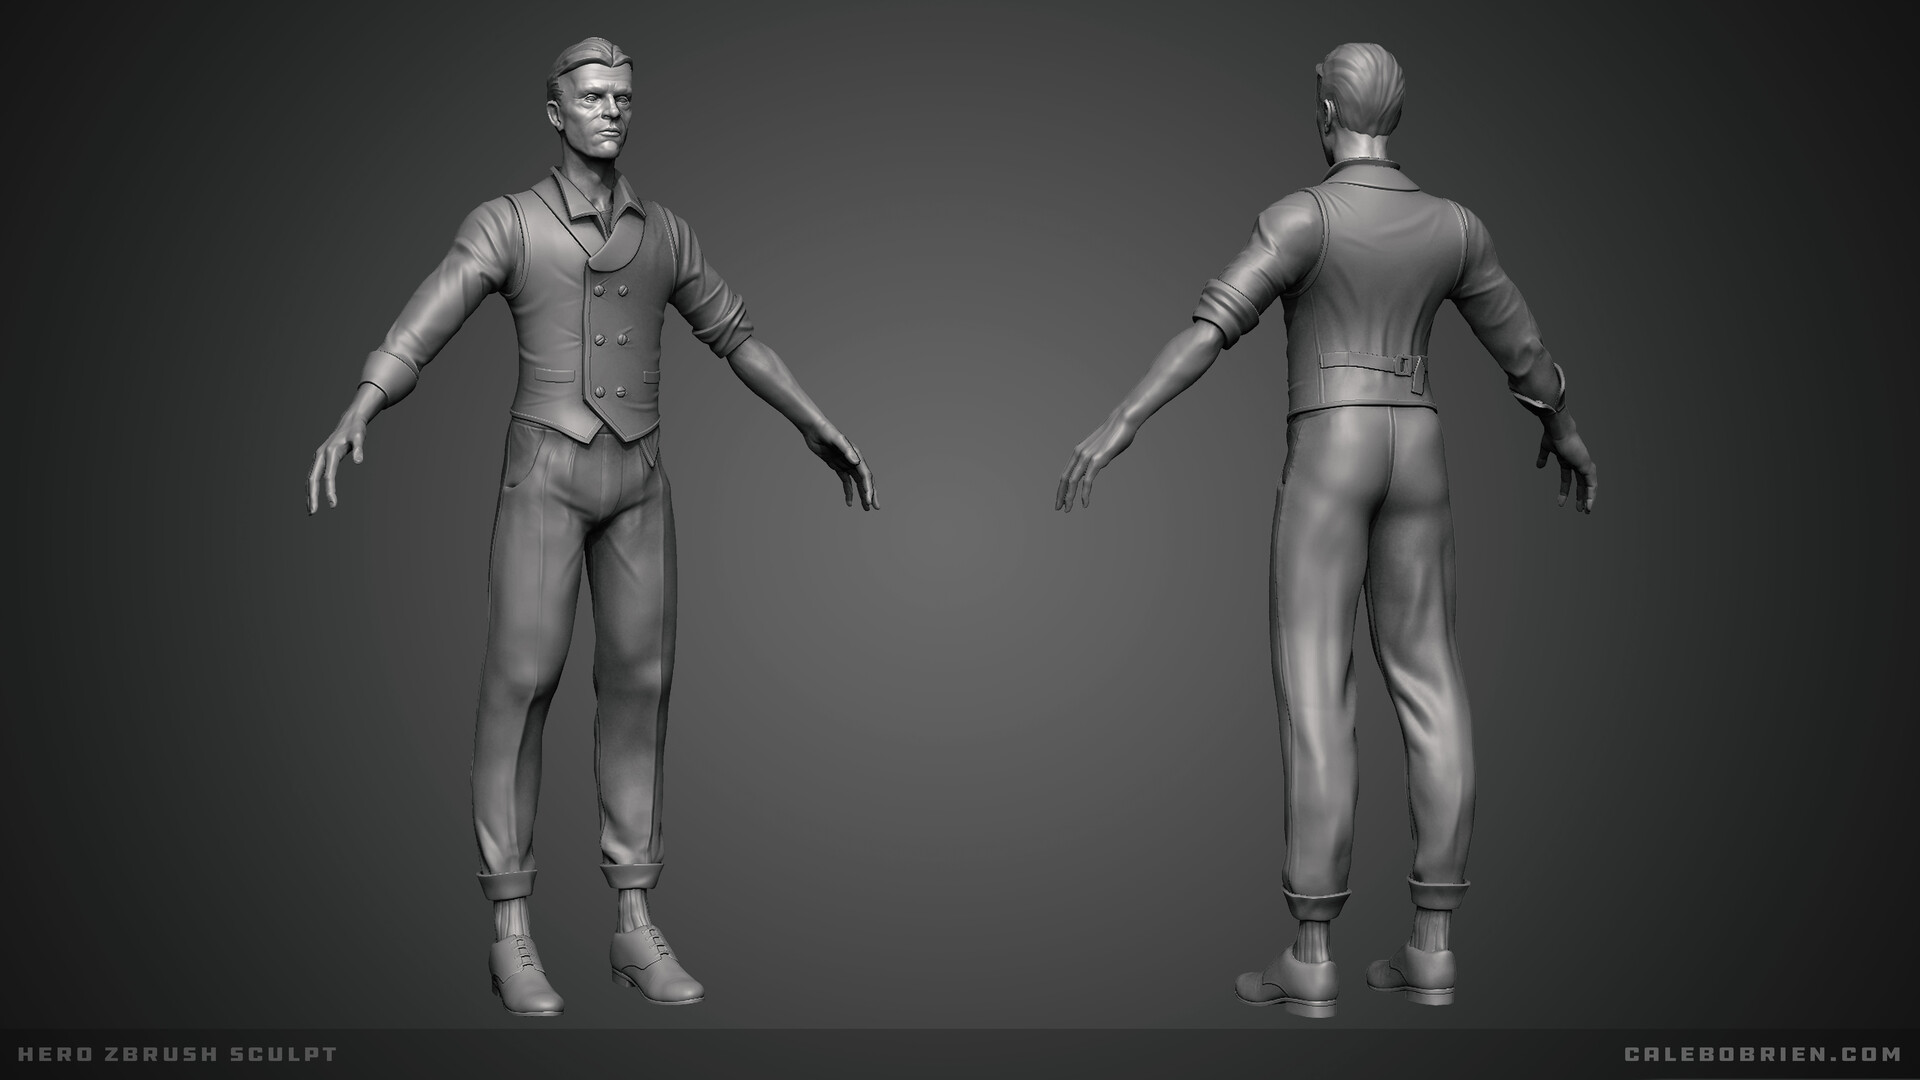 Caleb o brien hero sculpt